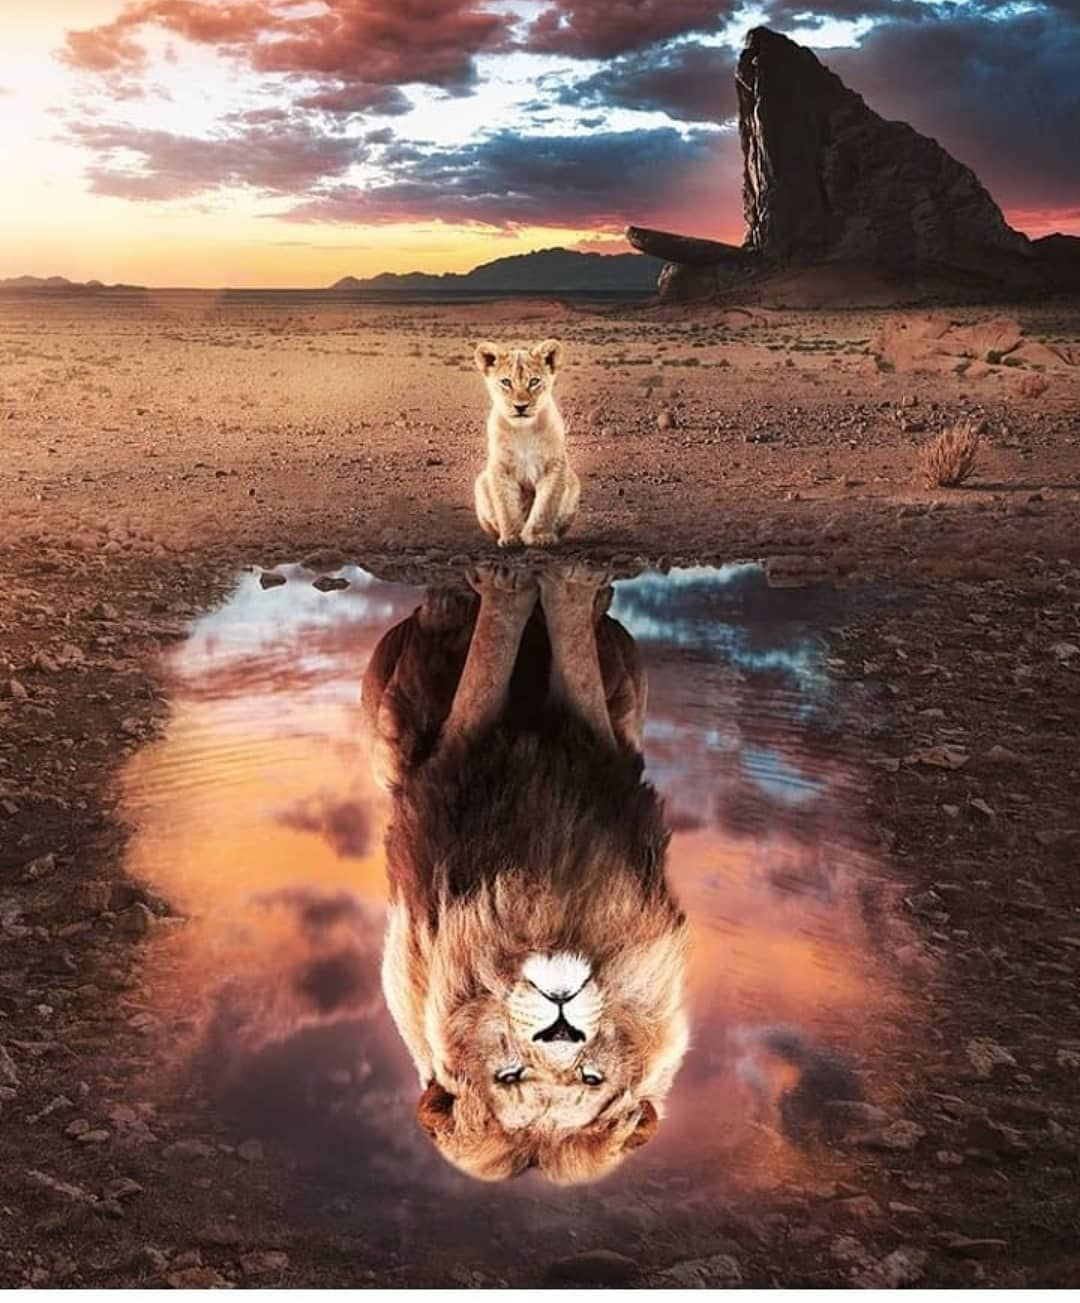 Lion On Instagram If You Love Lions You Must Check The Link In Our Bio Exclusive Lion Related Products O In 2020 Lion King Animals Animal Posters Lion Pictures